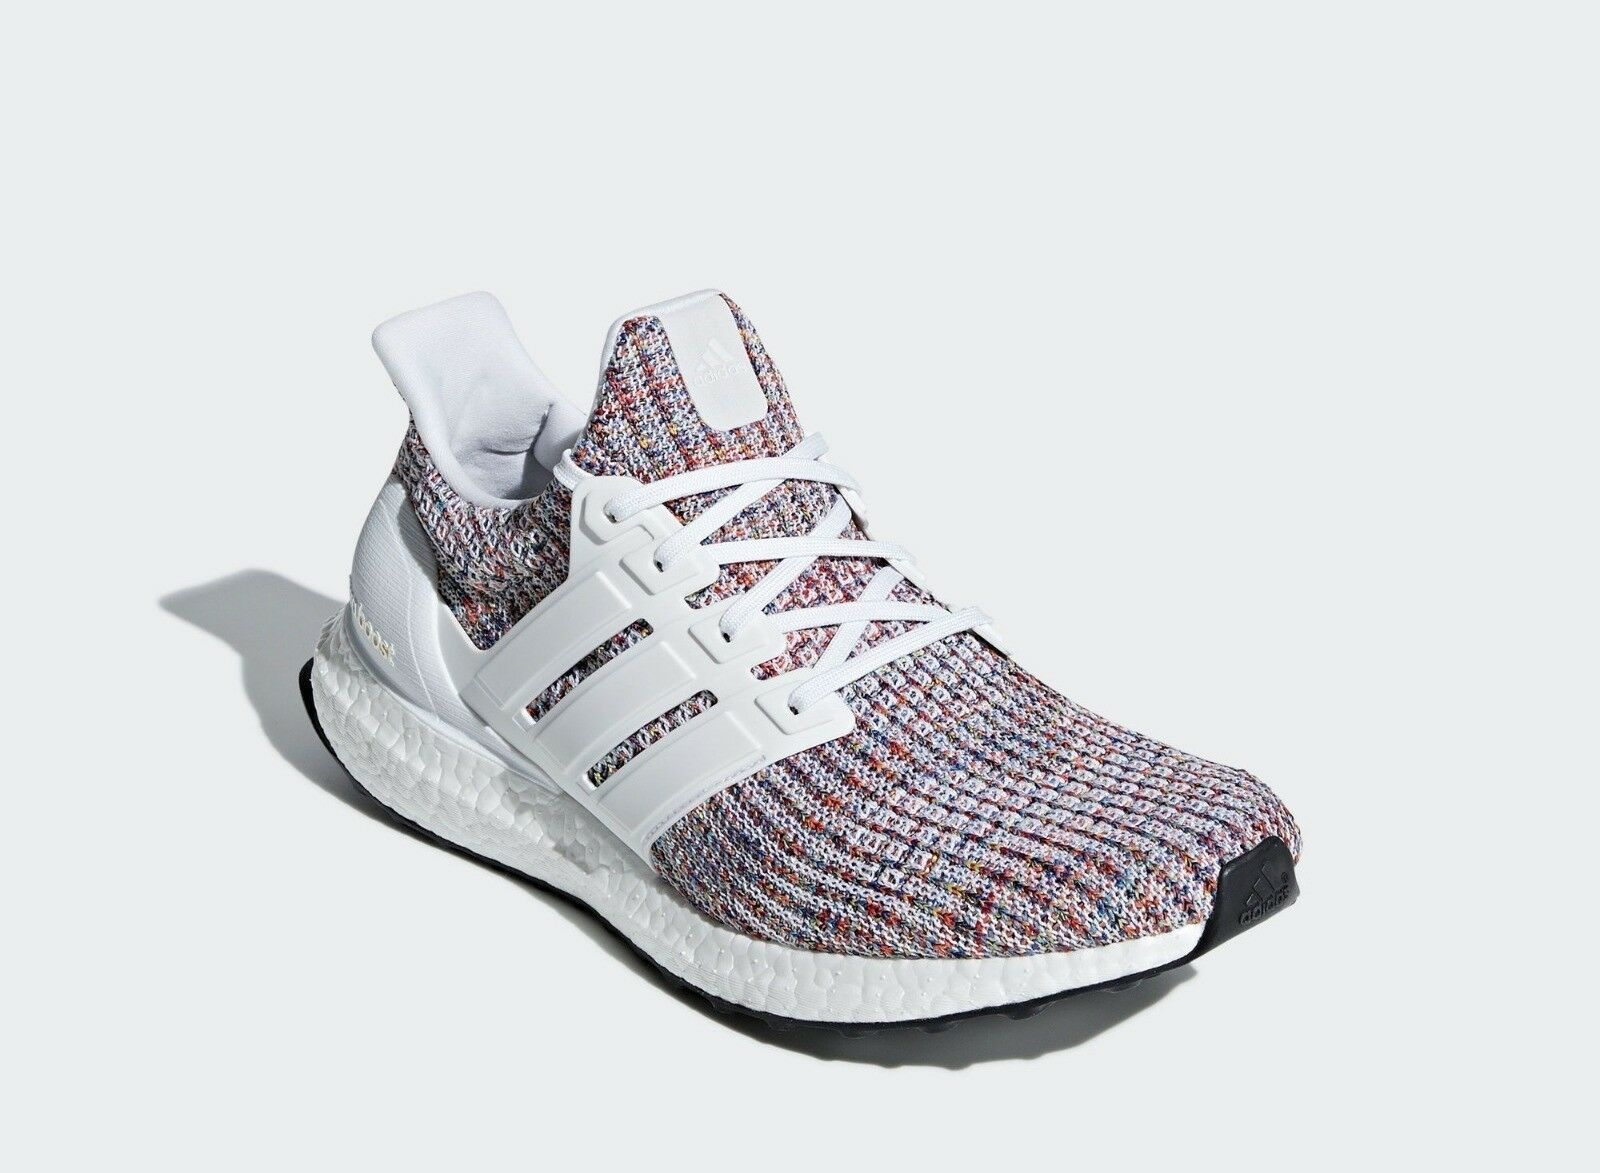 49f1fadb0 Adidas Running Ultra Boost 4.0 White Multicolor Men Sneaker Gym shoes New  CM8111